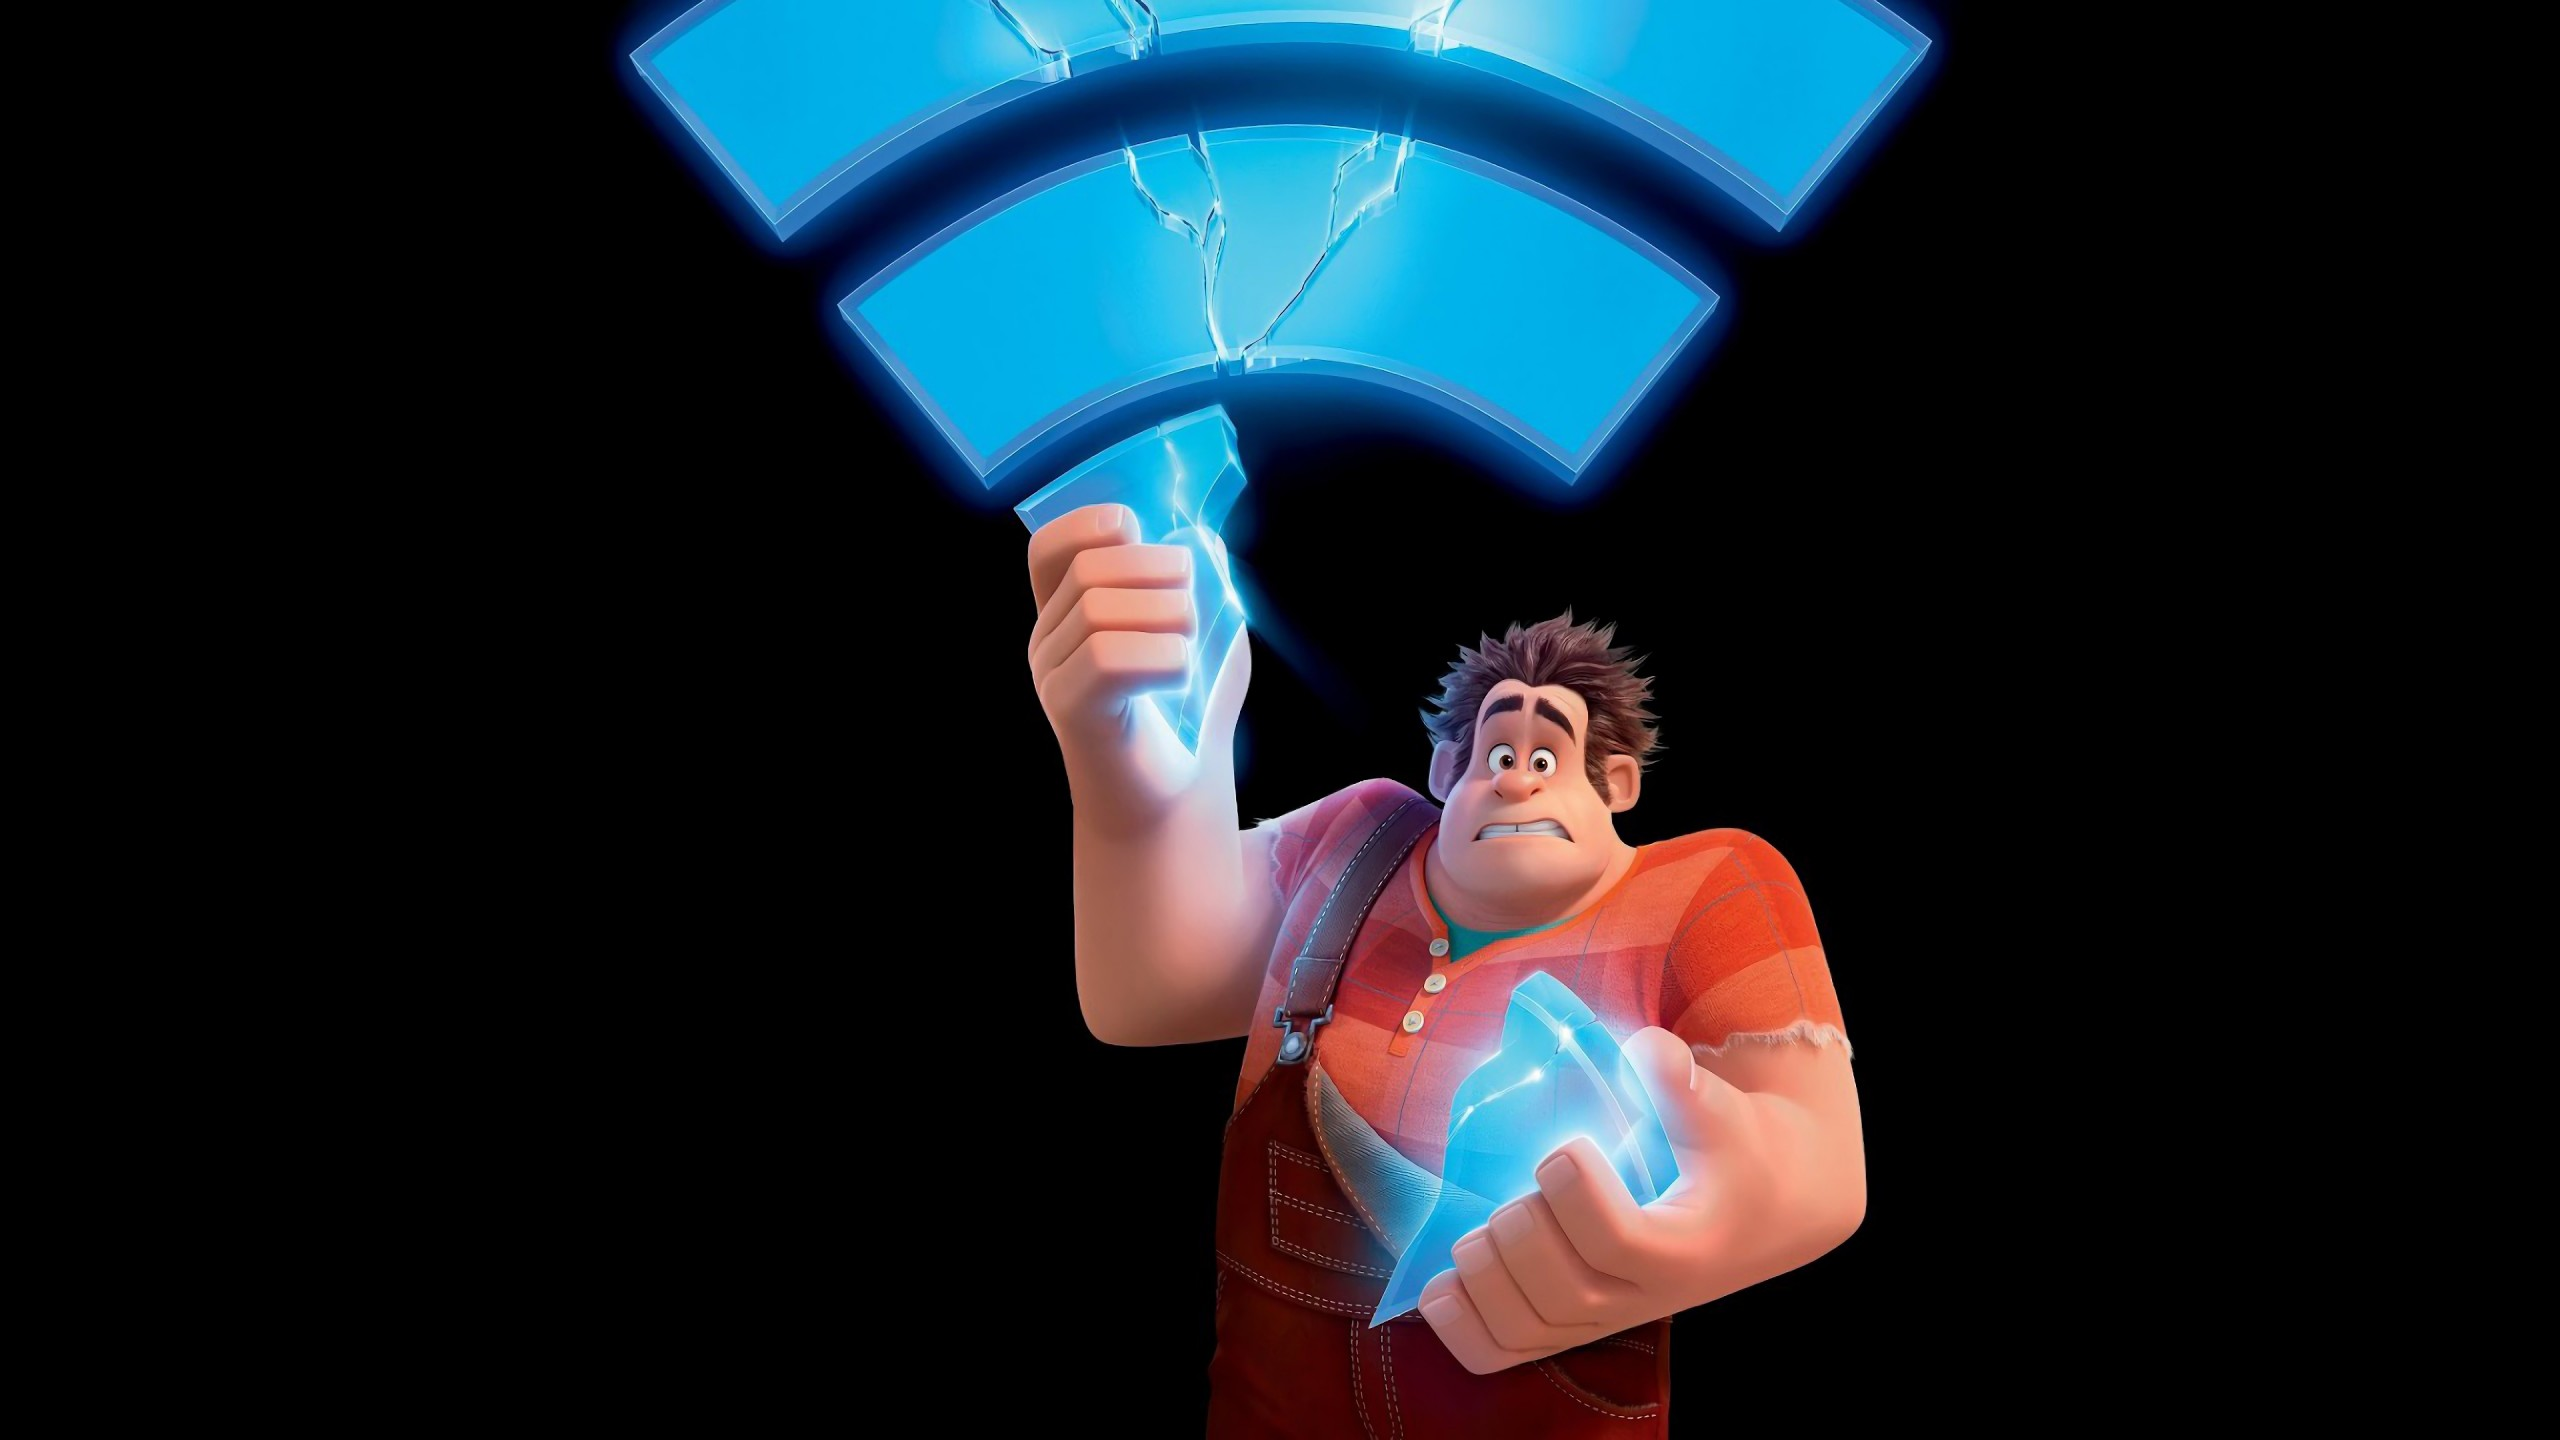 Wreck It Ralph Wallpapers ID953262